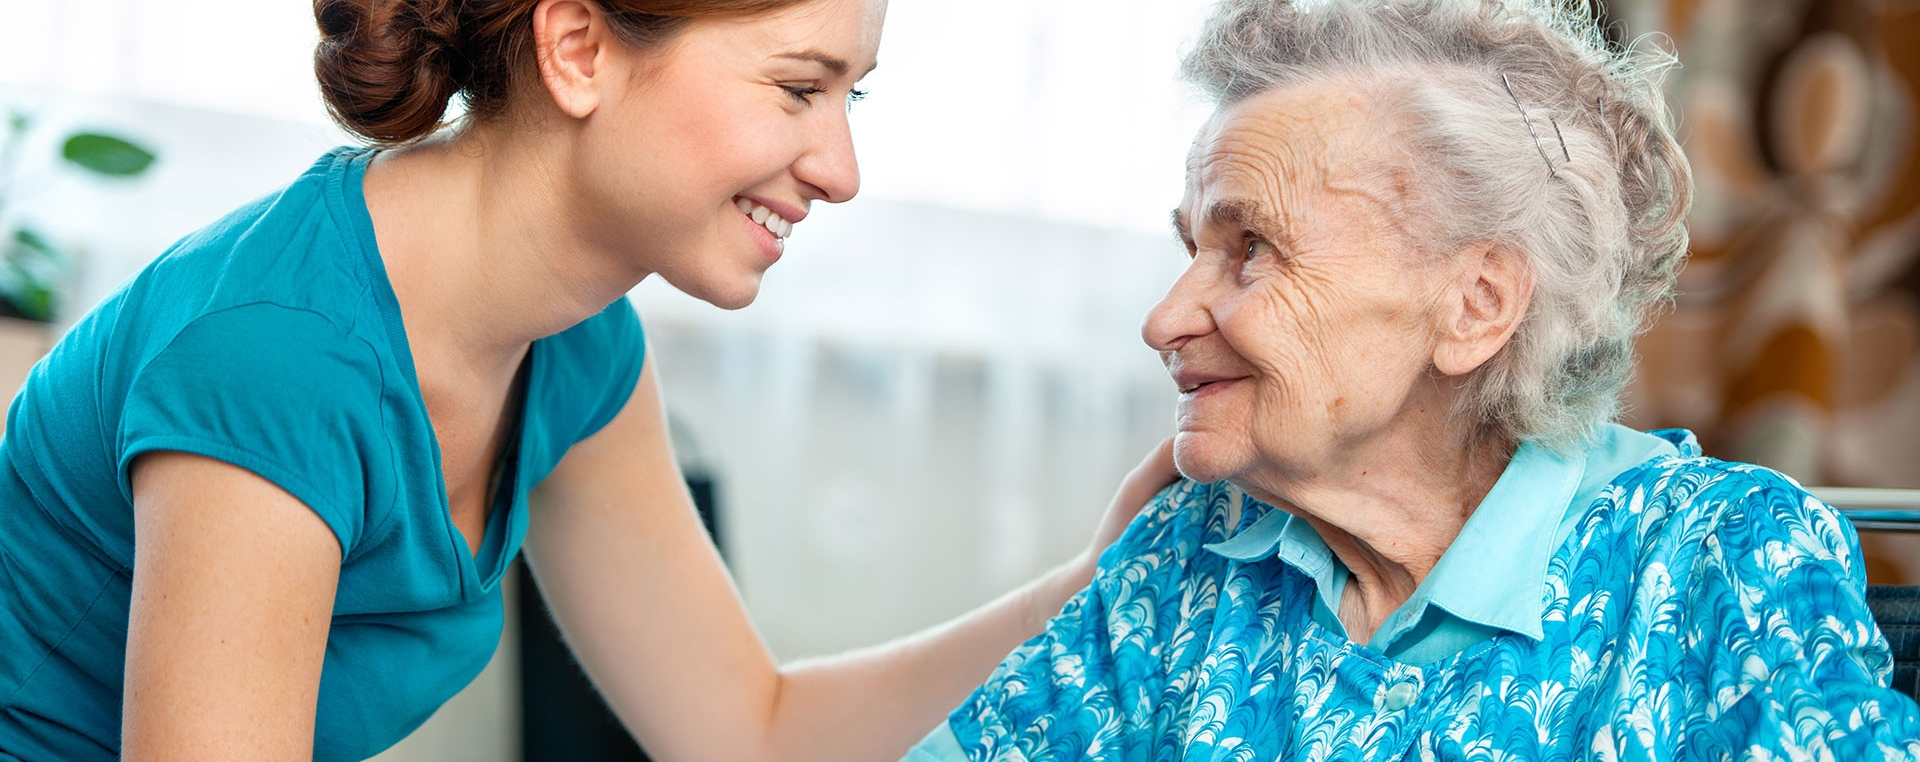 Professional care support for older people at home - NCCN